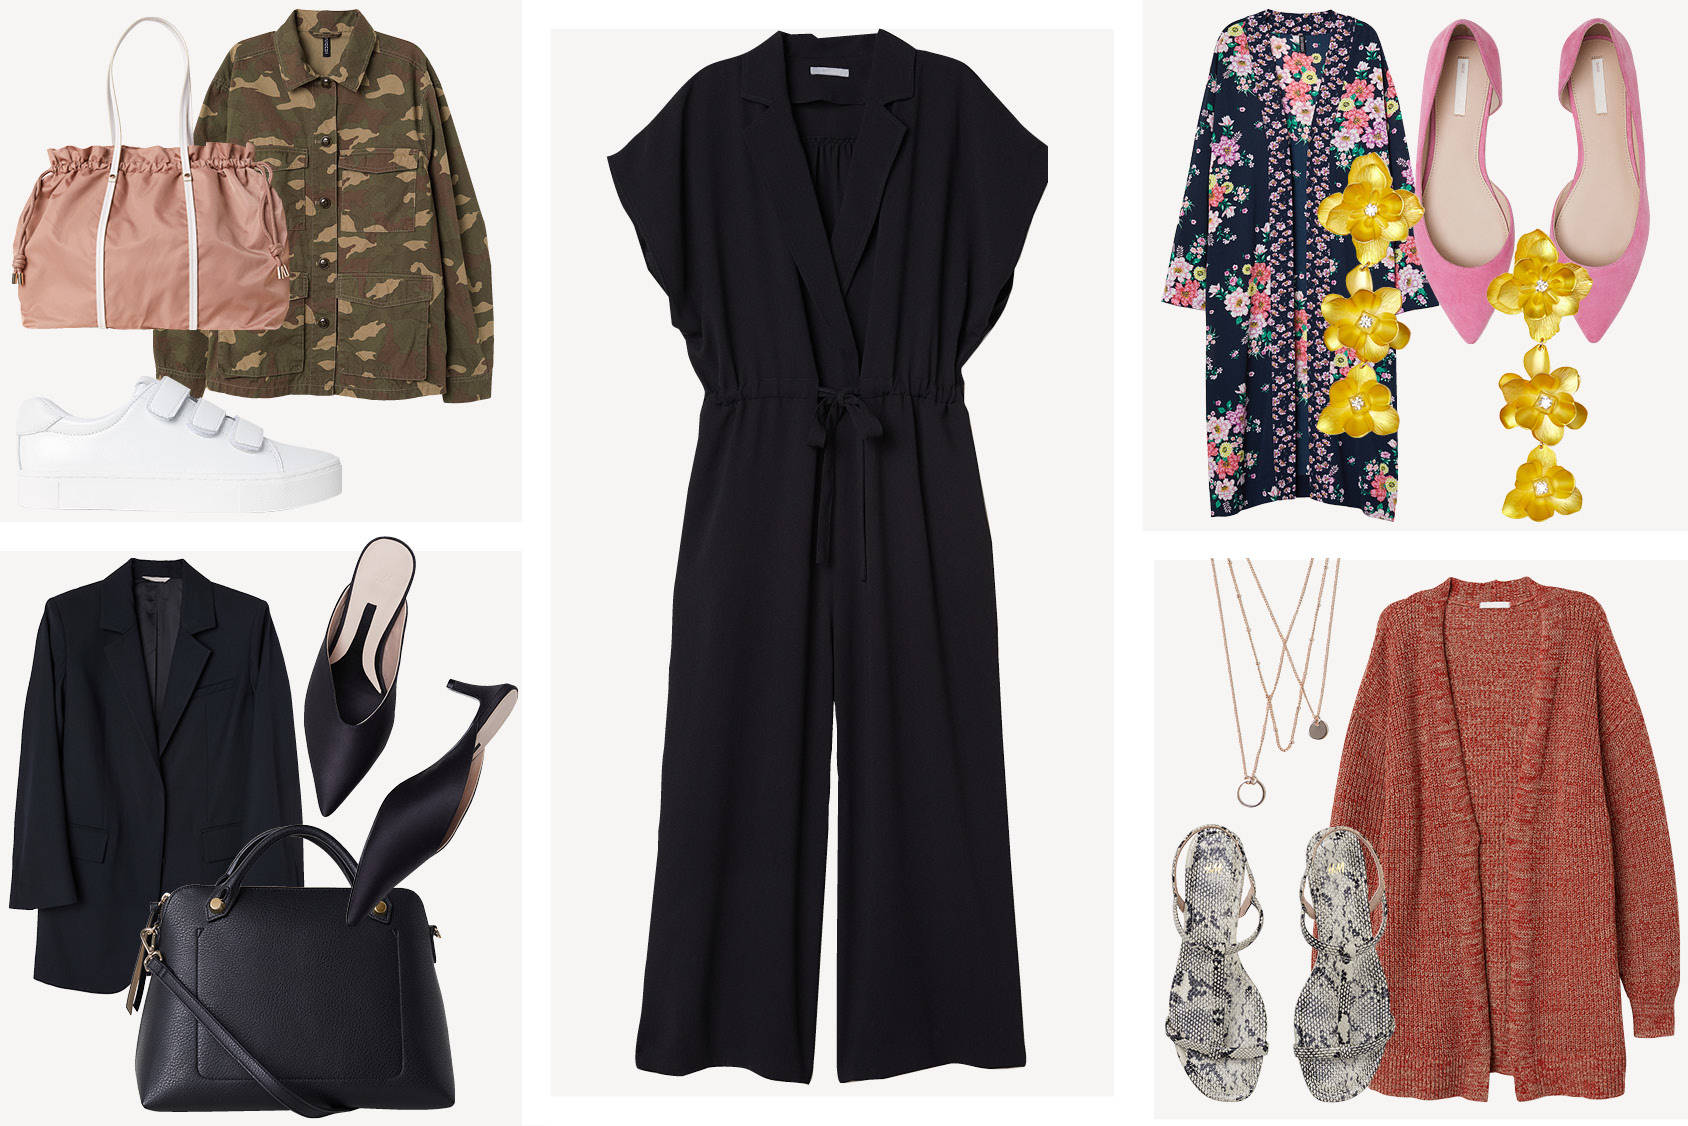 Four ways to style the jumpsuit